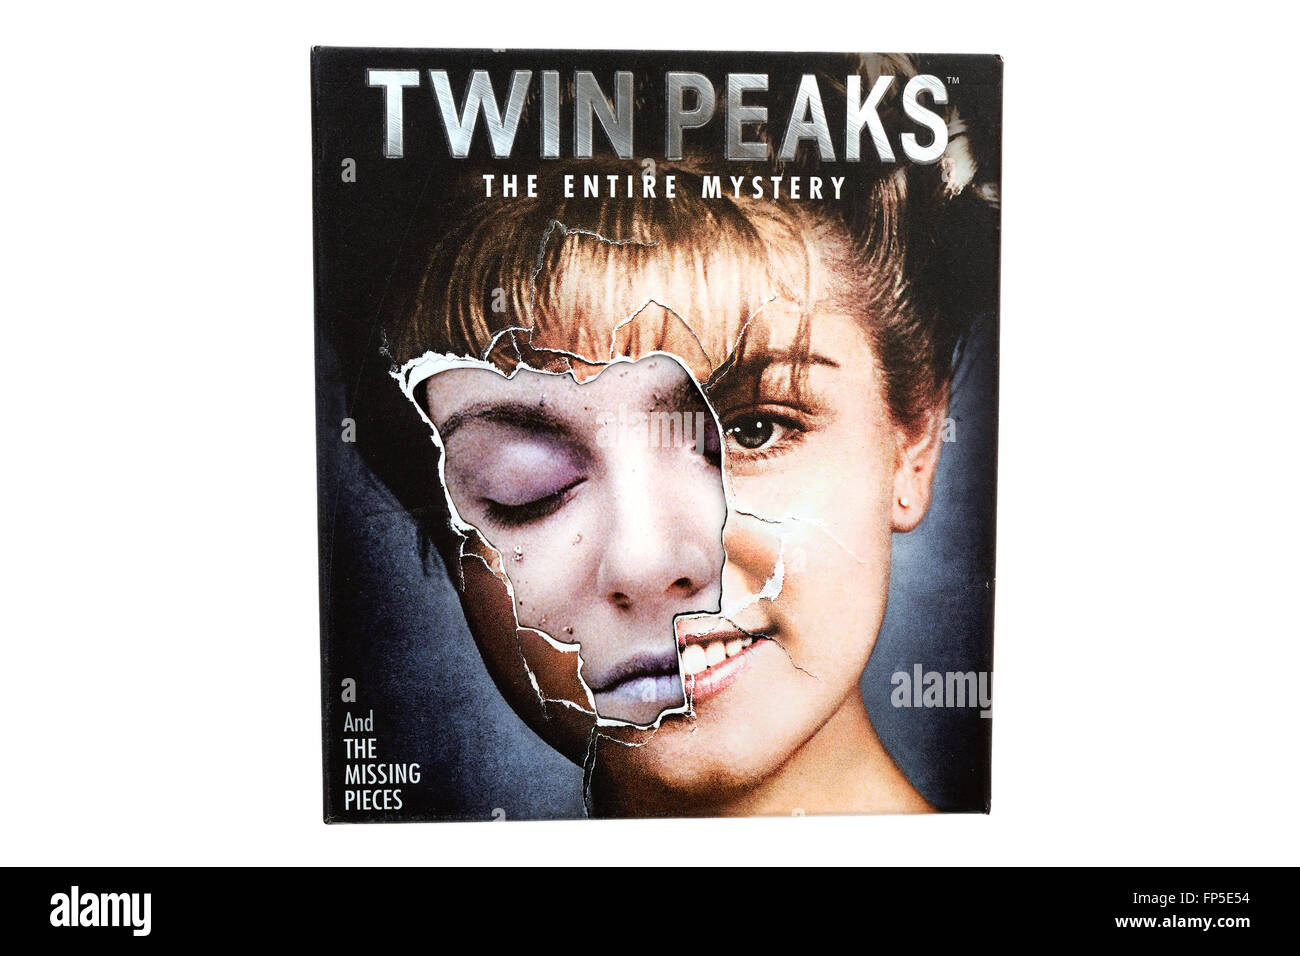 BARCELONA, SPAIN - DEC 27, 2014: Twin Peaks, American television serial drama created by Mark Frost and David Lynch. - Stock Image